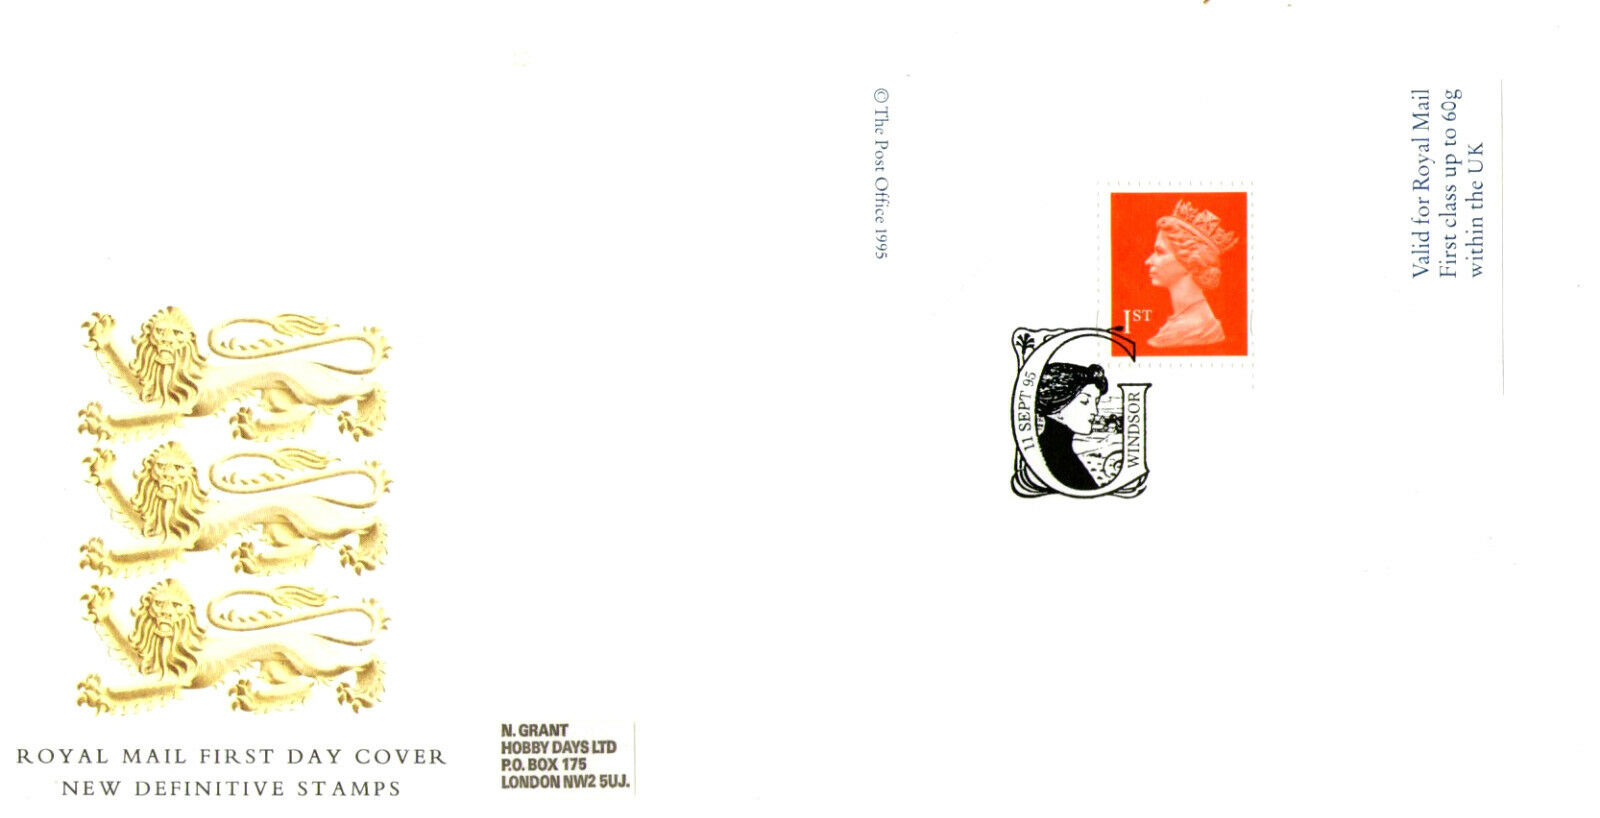 11 september 1995 greetings card label royal mail first day cover 1 di 1 vedi altro m4hsunfo